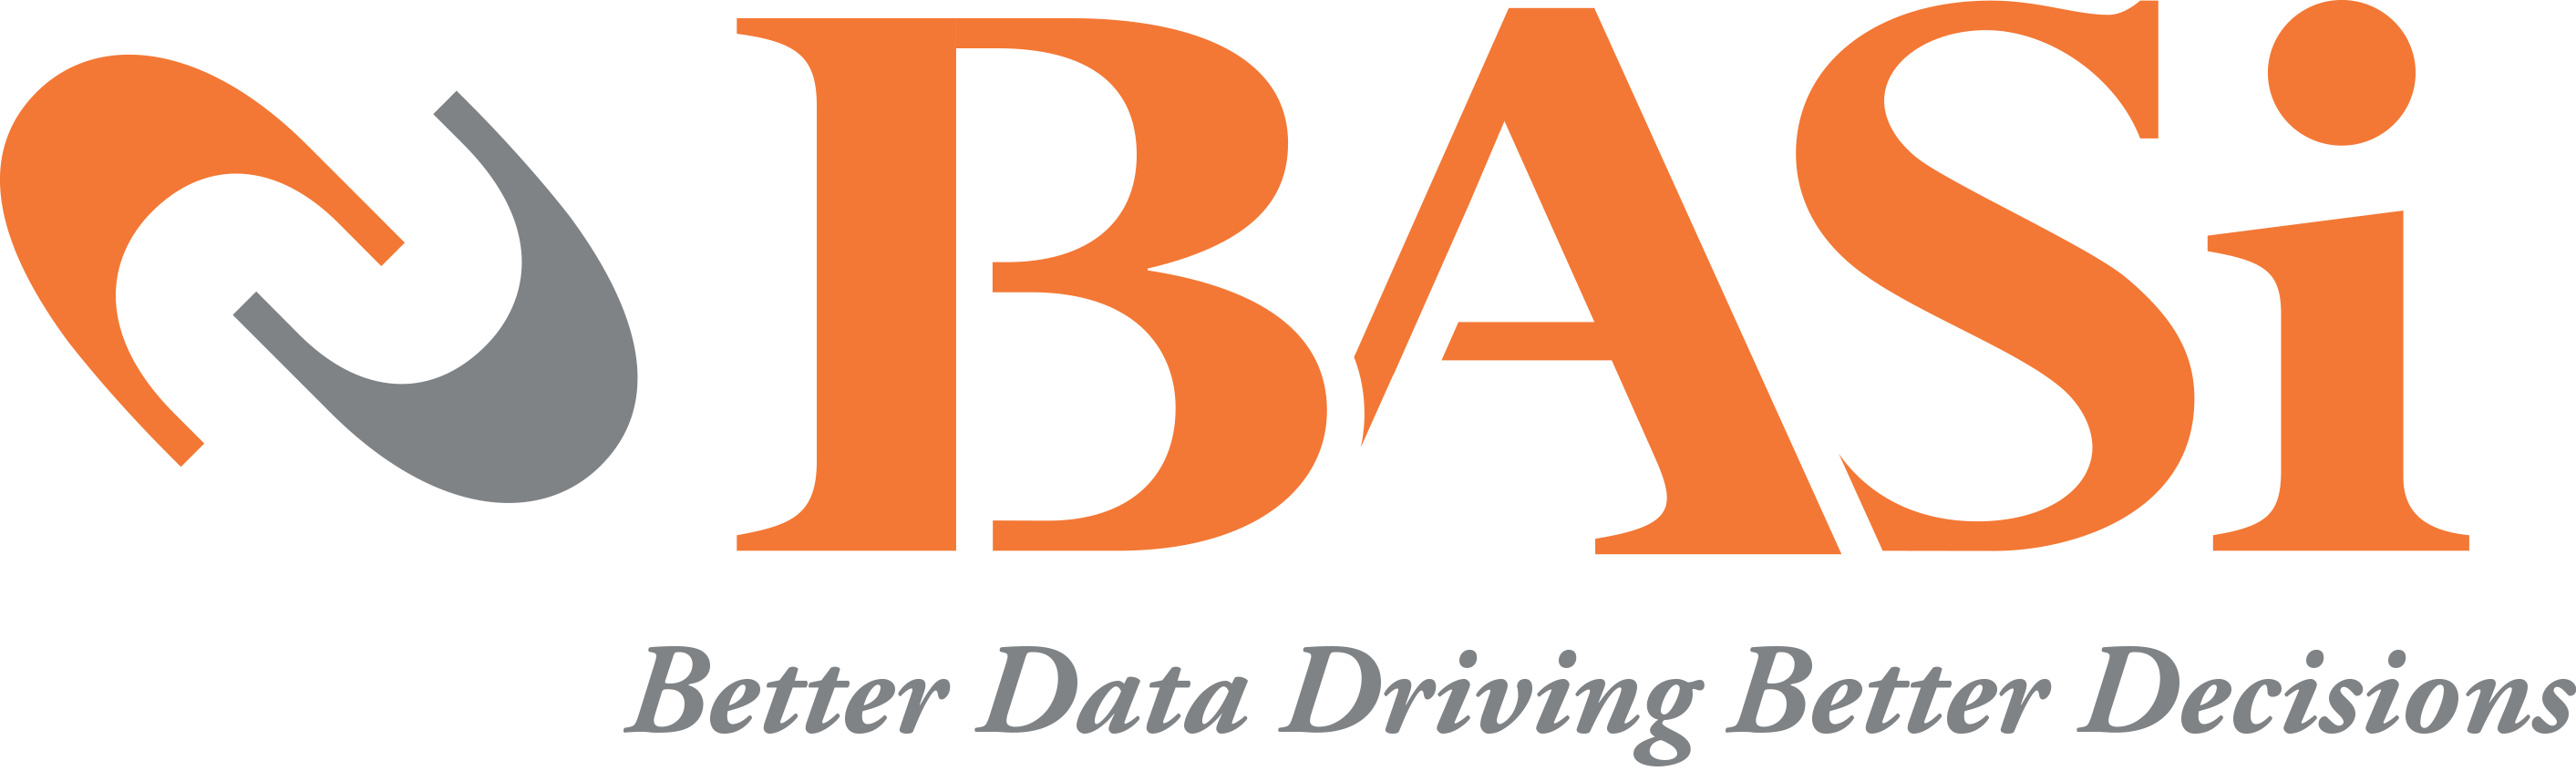 BASi Continues Profitability Improvement to Close Out Fiscal 2017